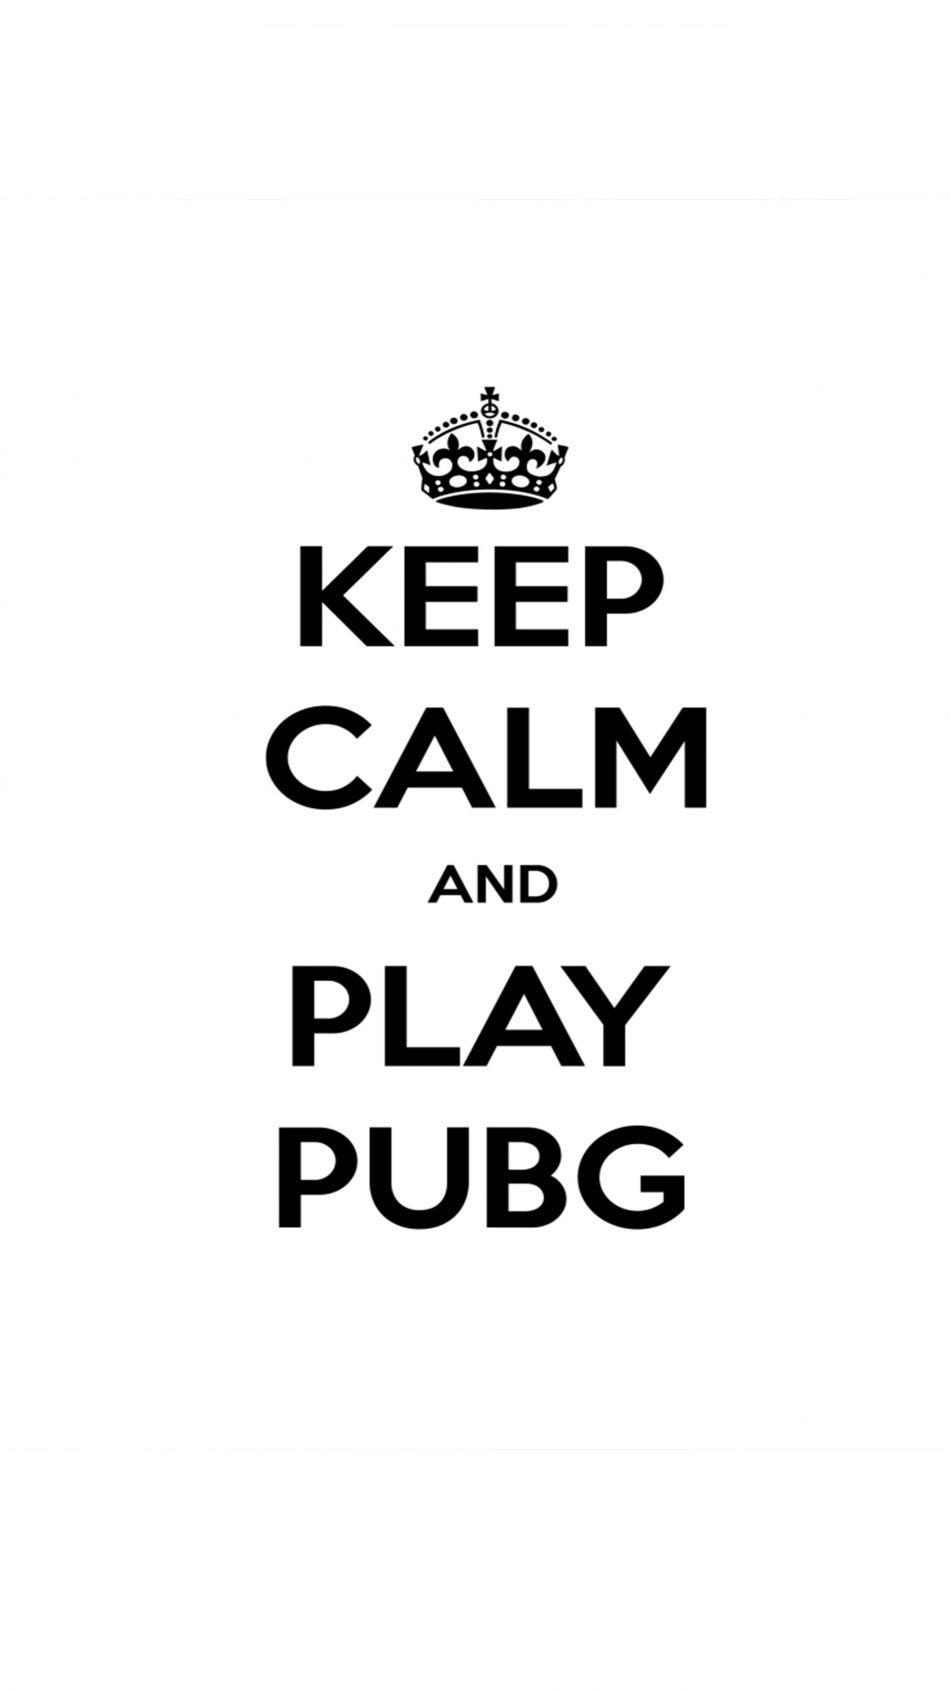 Keep Calm And Play PUBG 4K Ultra HD Mobile Wallpaper